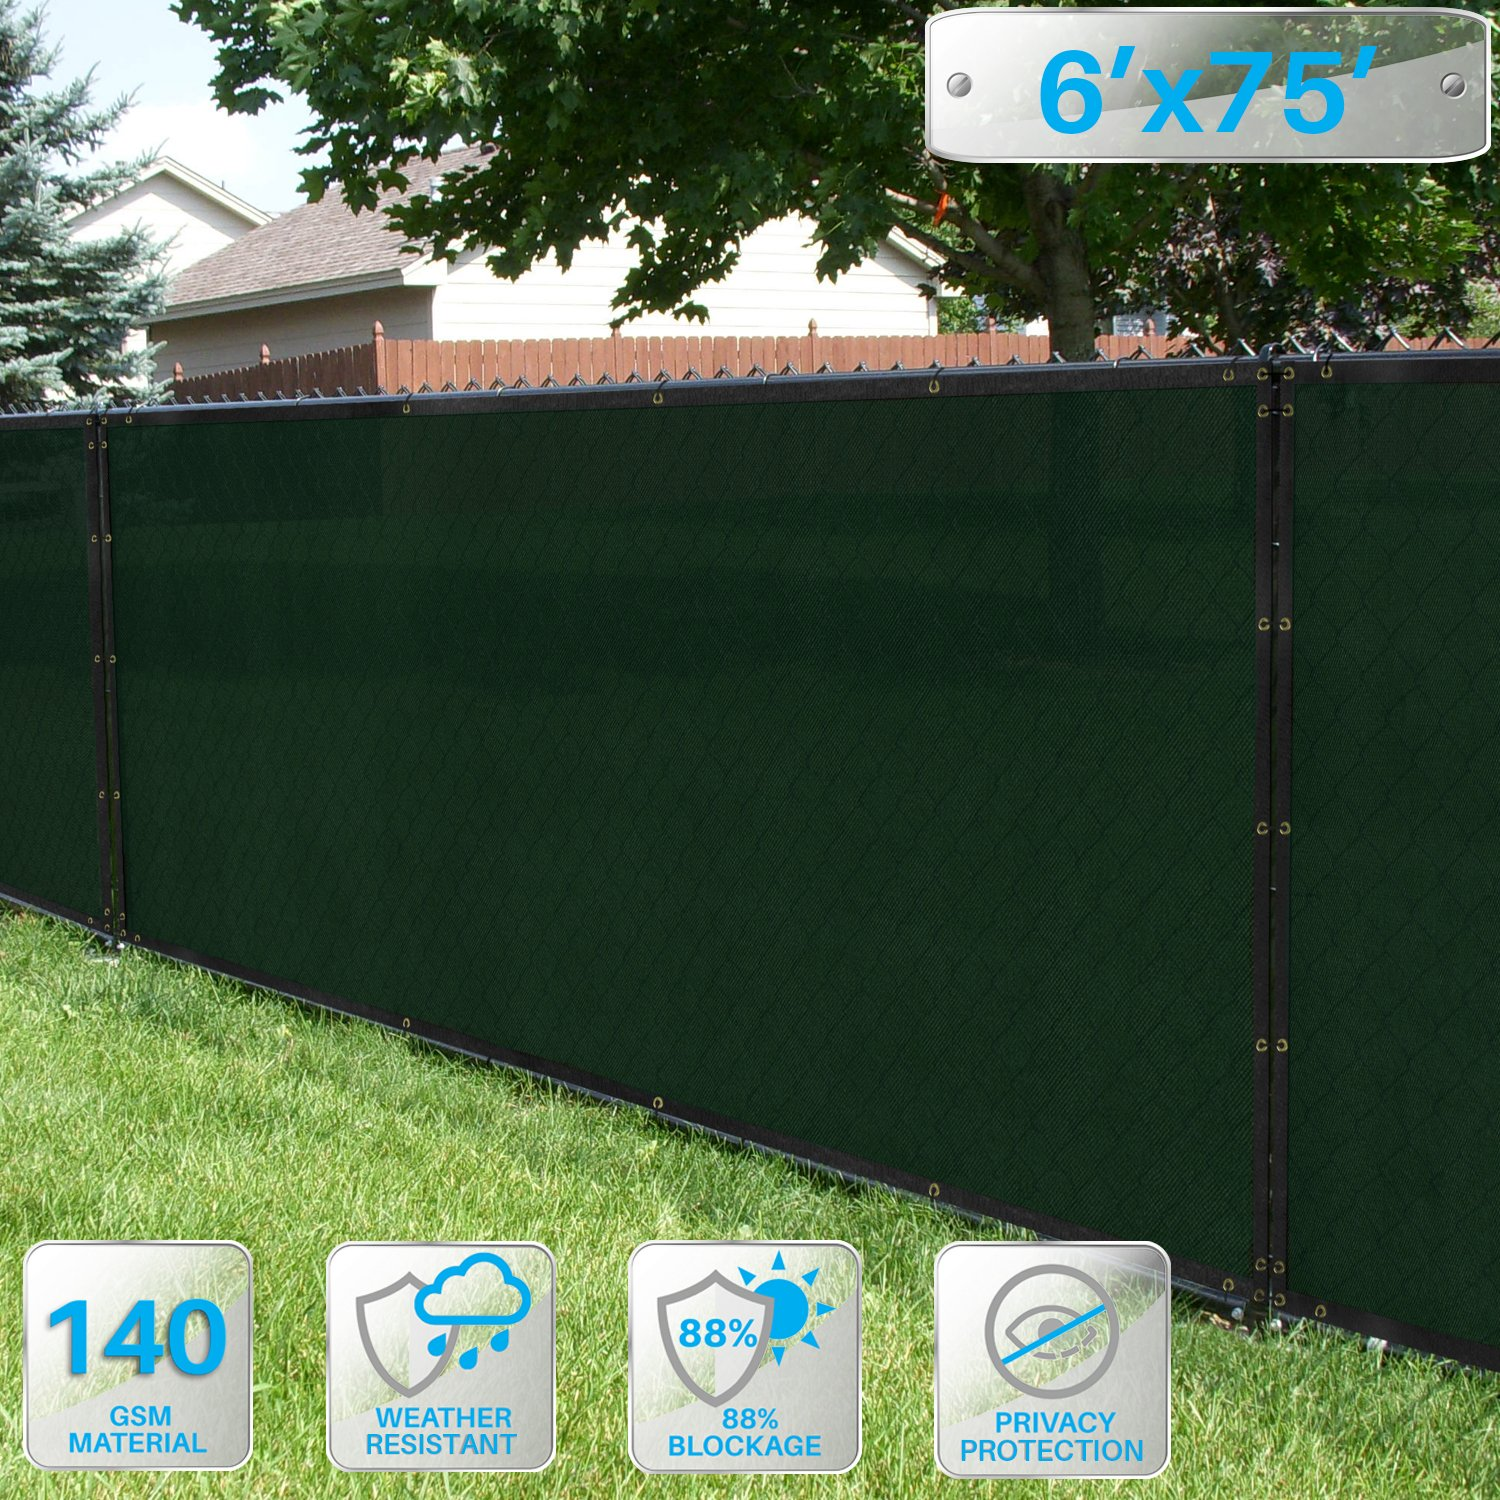 6' x 75' Privacy Screen Fence in Dark Green, Commercial Grand Mesh Shade Fabric with Brass Gromment Outdoor Windscren - Custom Size Available